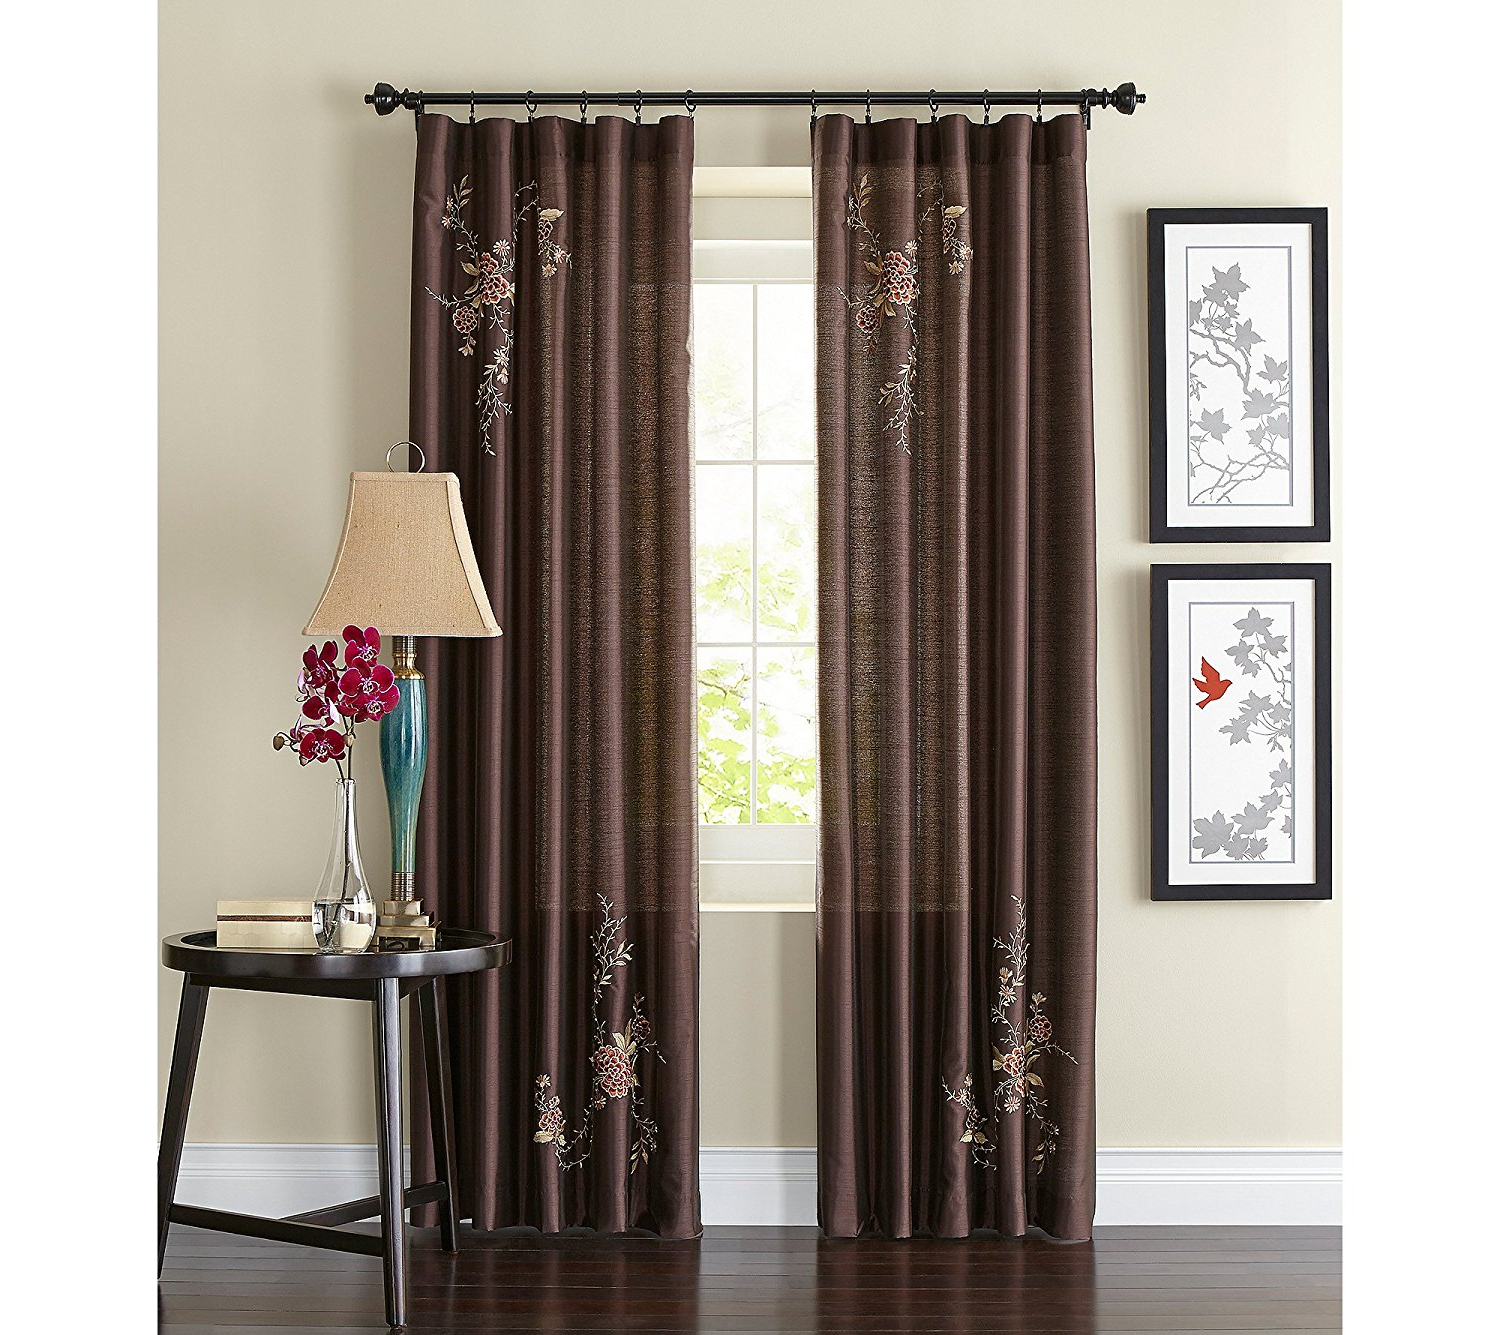 Alesandra Floral Embroidered Faux Silk Window Curtain Panel, Brown, 44 Inch X 84 Inch, Drapes Pinch Bordeaux 56inch Treatment Curtain Swag Orange. (View 16 of 20)